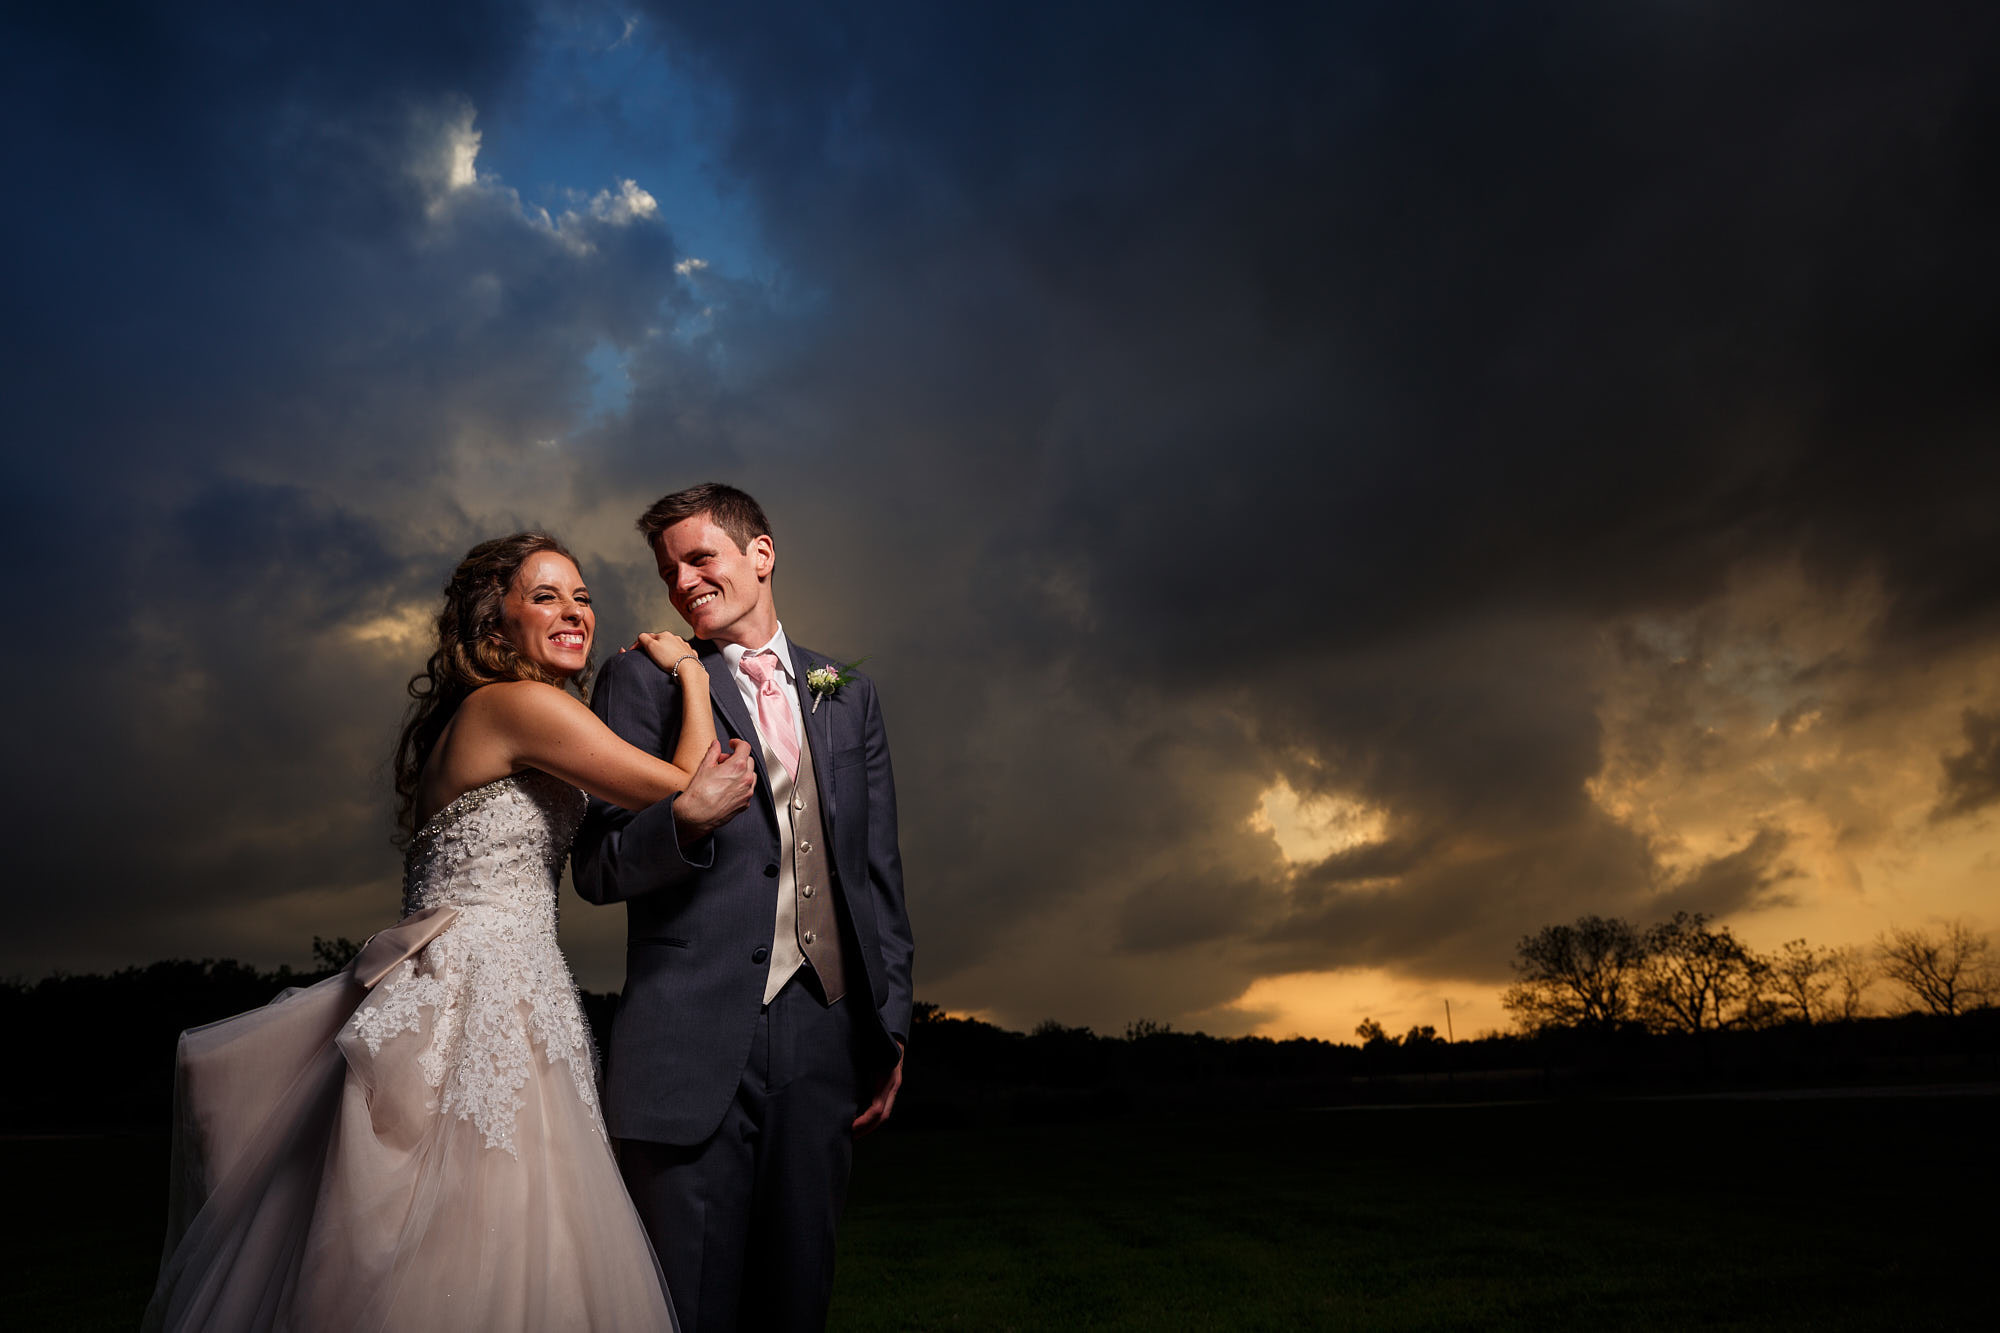 Austin Wedding Photographer - Dramatic storm cloud sunset with bride and groom.